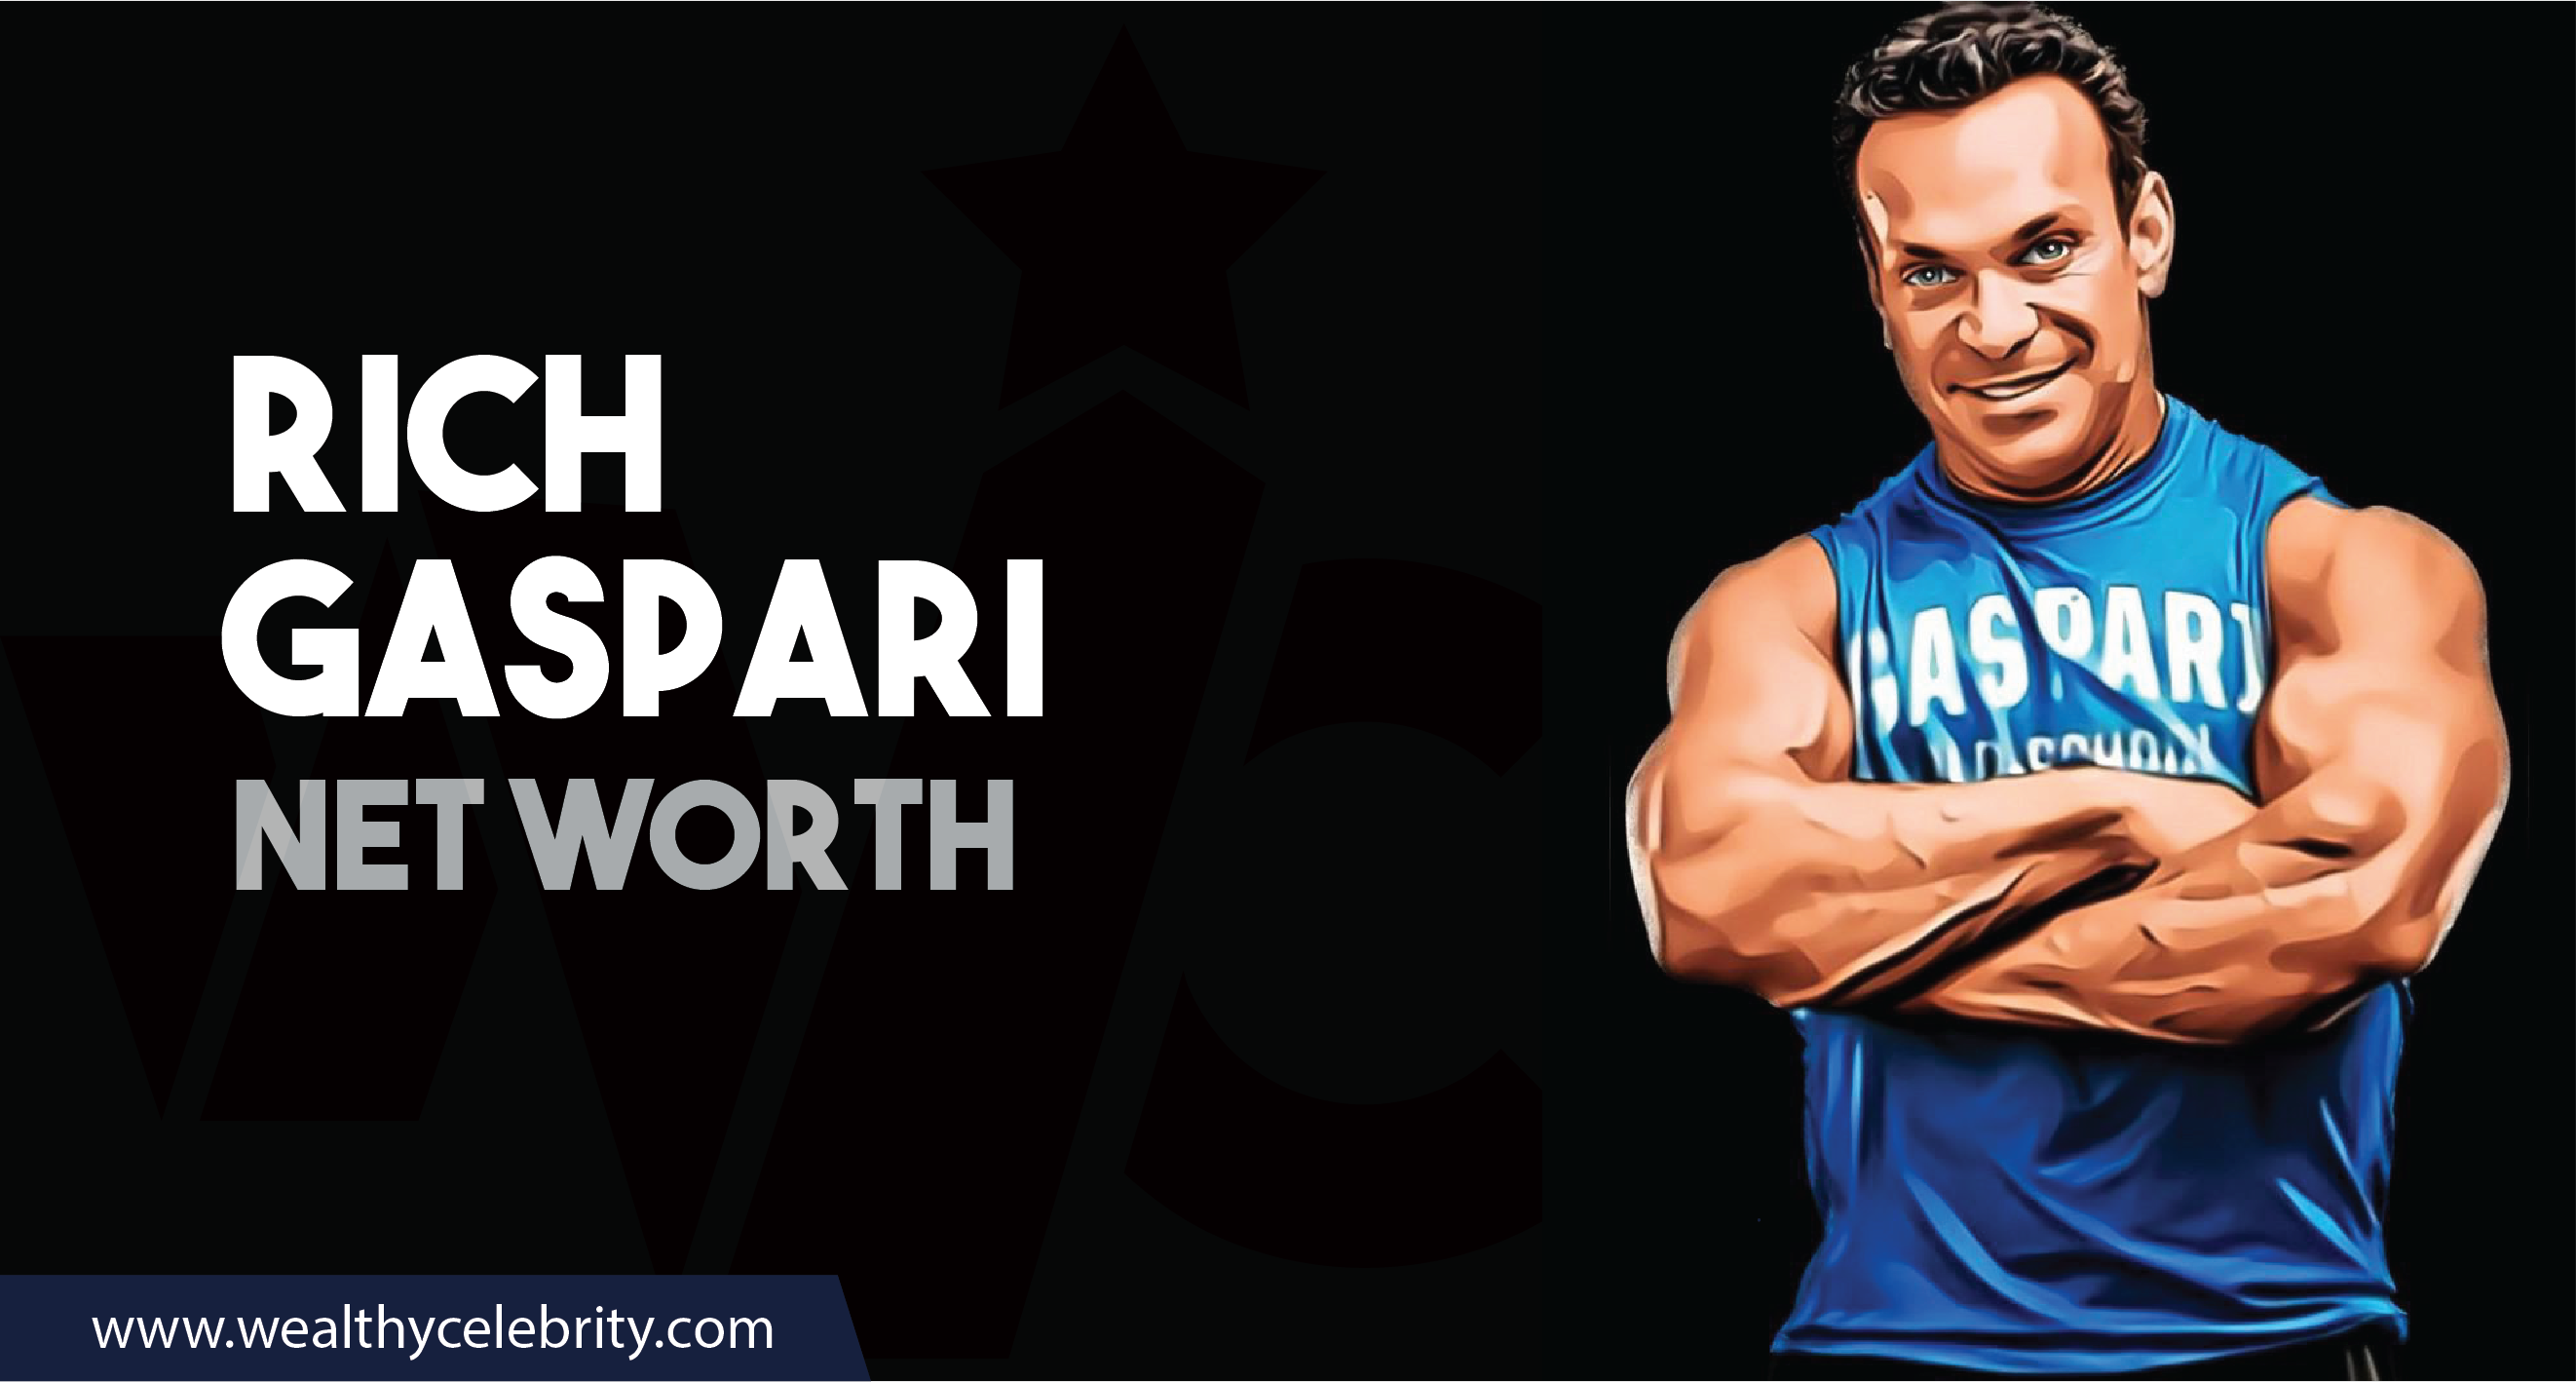 Rich Gaspari_Net worth